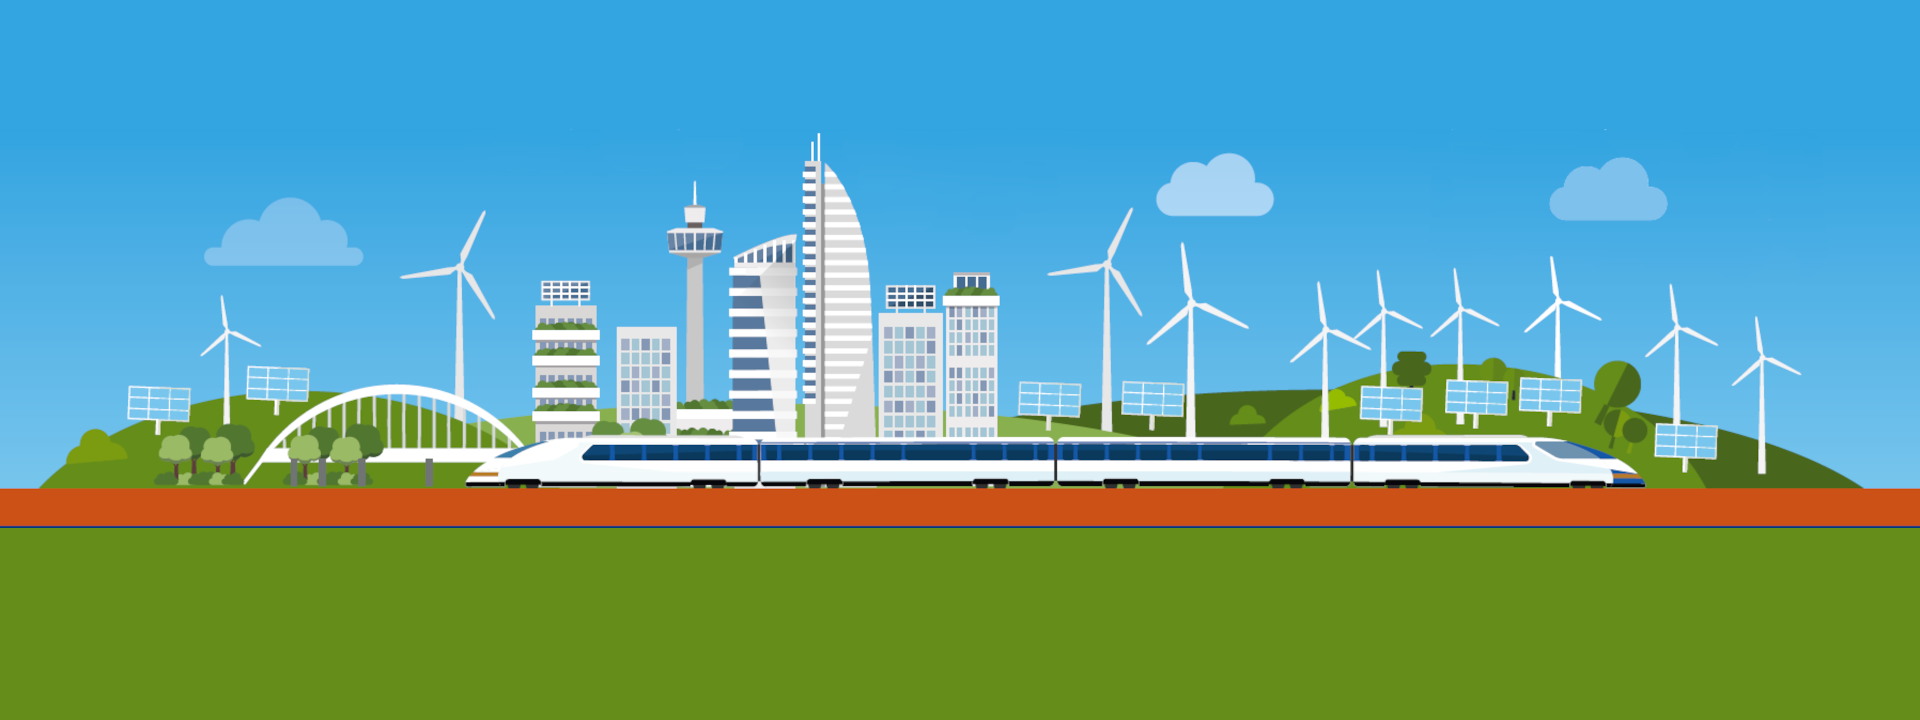 Finding your rail route to Net Zero